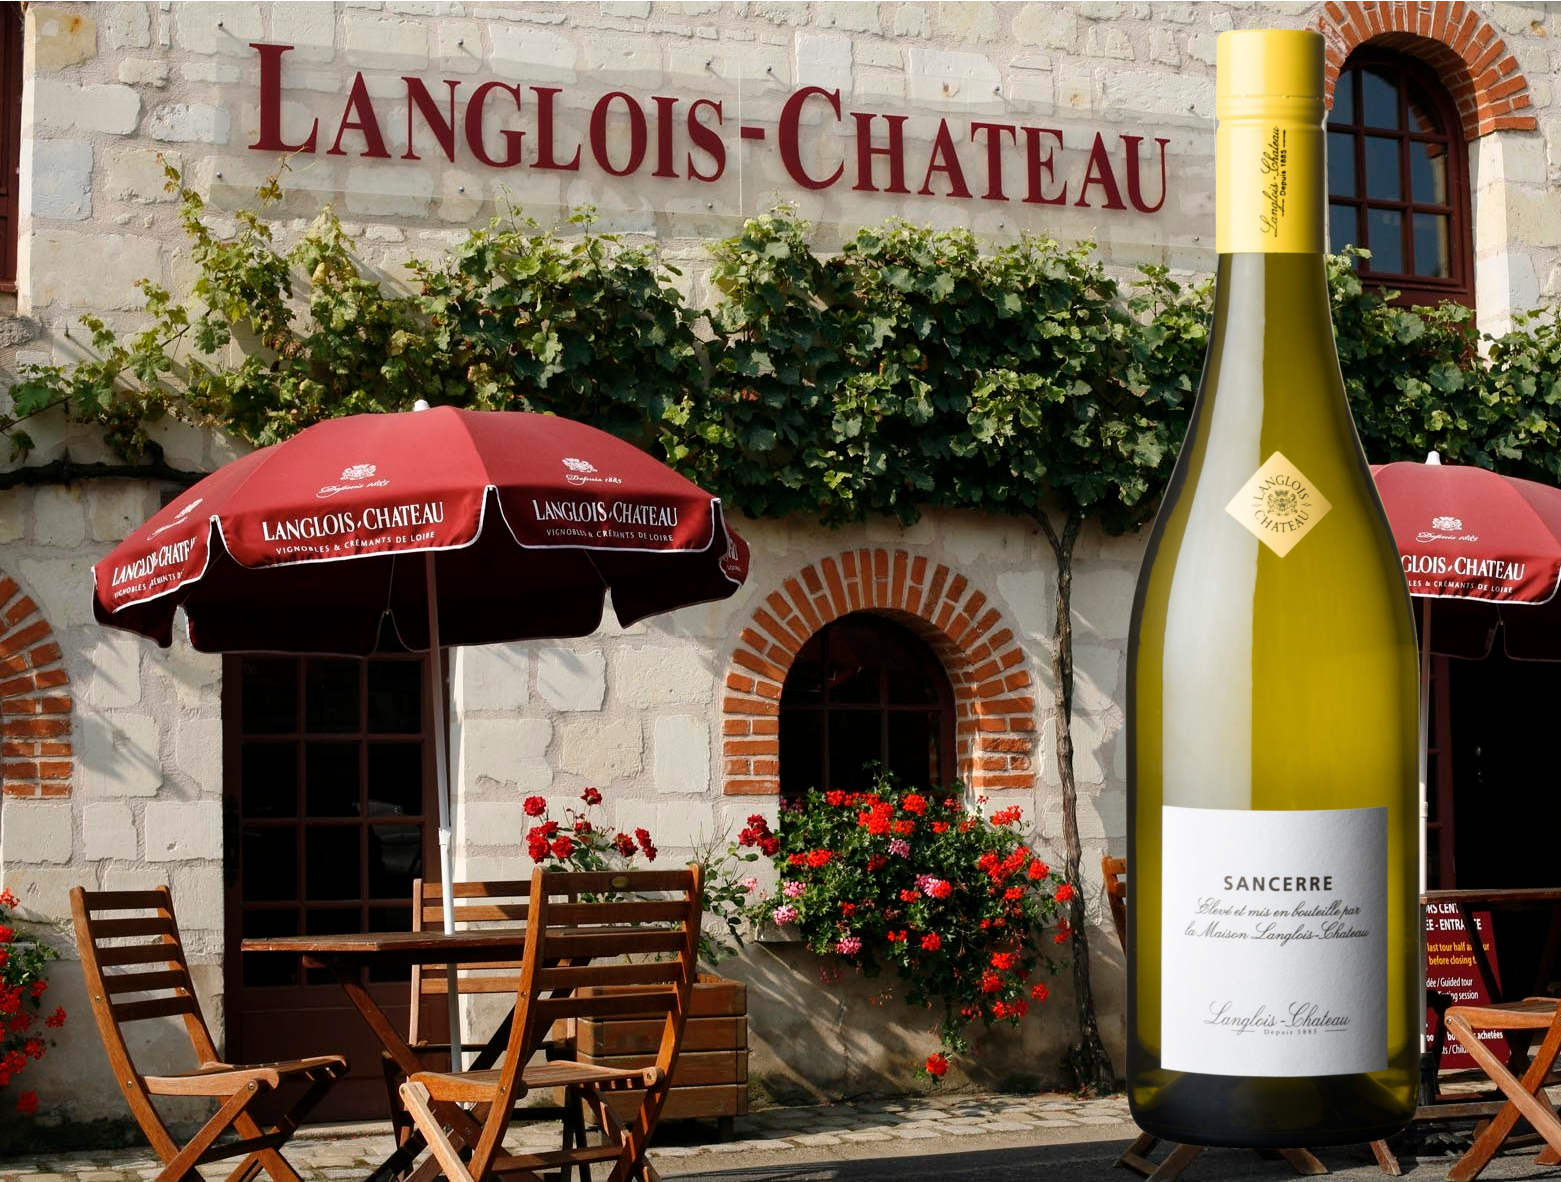 Get to know the elegant, versatile wines of Sancerre and Pouilly-Fume